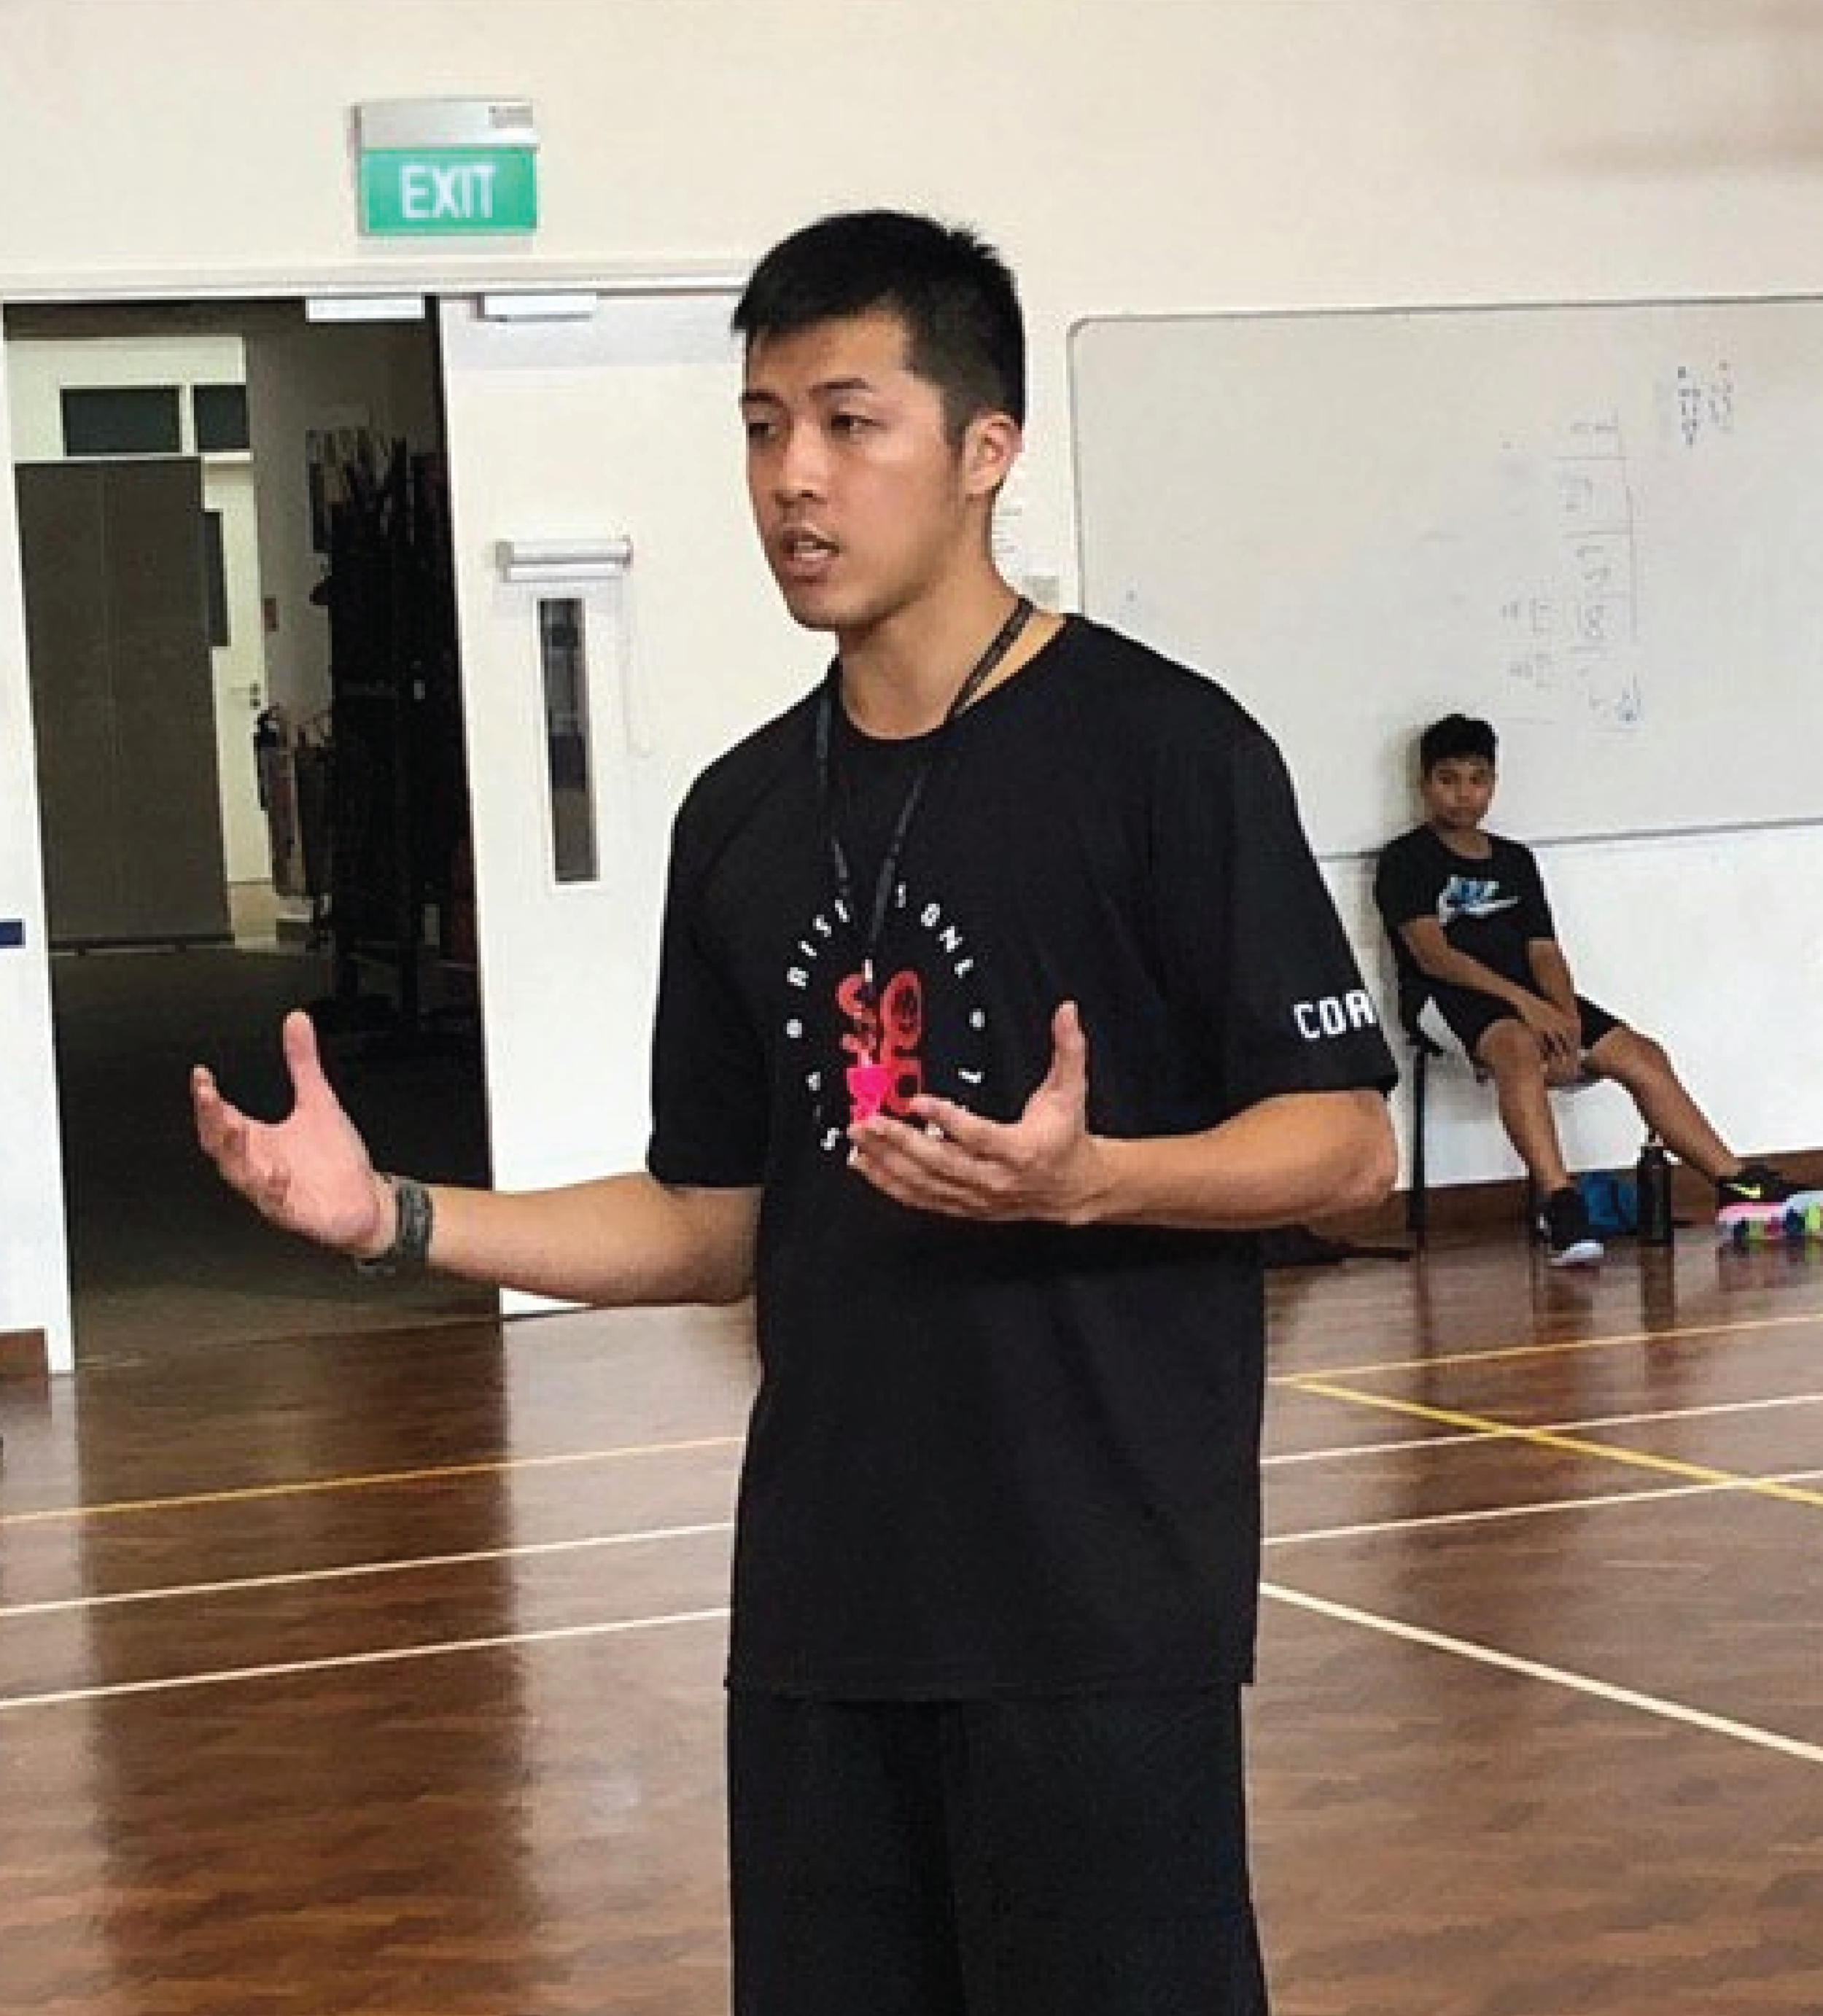 GARY YEO - Current Teams: Academy Coach, Naval Base Sec Head Coach, Stingers U15 Boys.Playing Career: - Singapore Comb. Uni. '18- Participated in Thailand Basketball Super League '17- Participated in Malaysia Pro League '19- Representing Singapore for Amway 3x3 in Japan '19Coaching Experience: - 5 years. - 2 x South Zone Finals (Champions in '19)- National Top 8 in '18